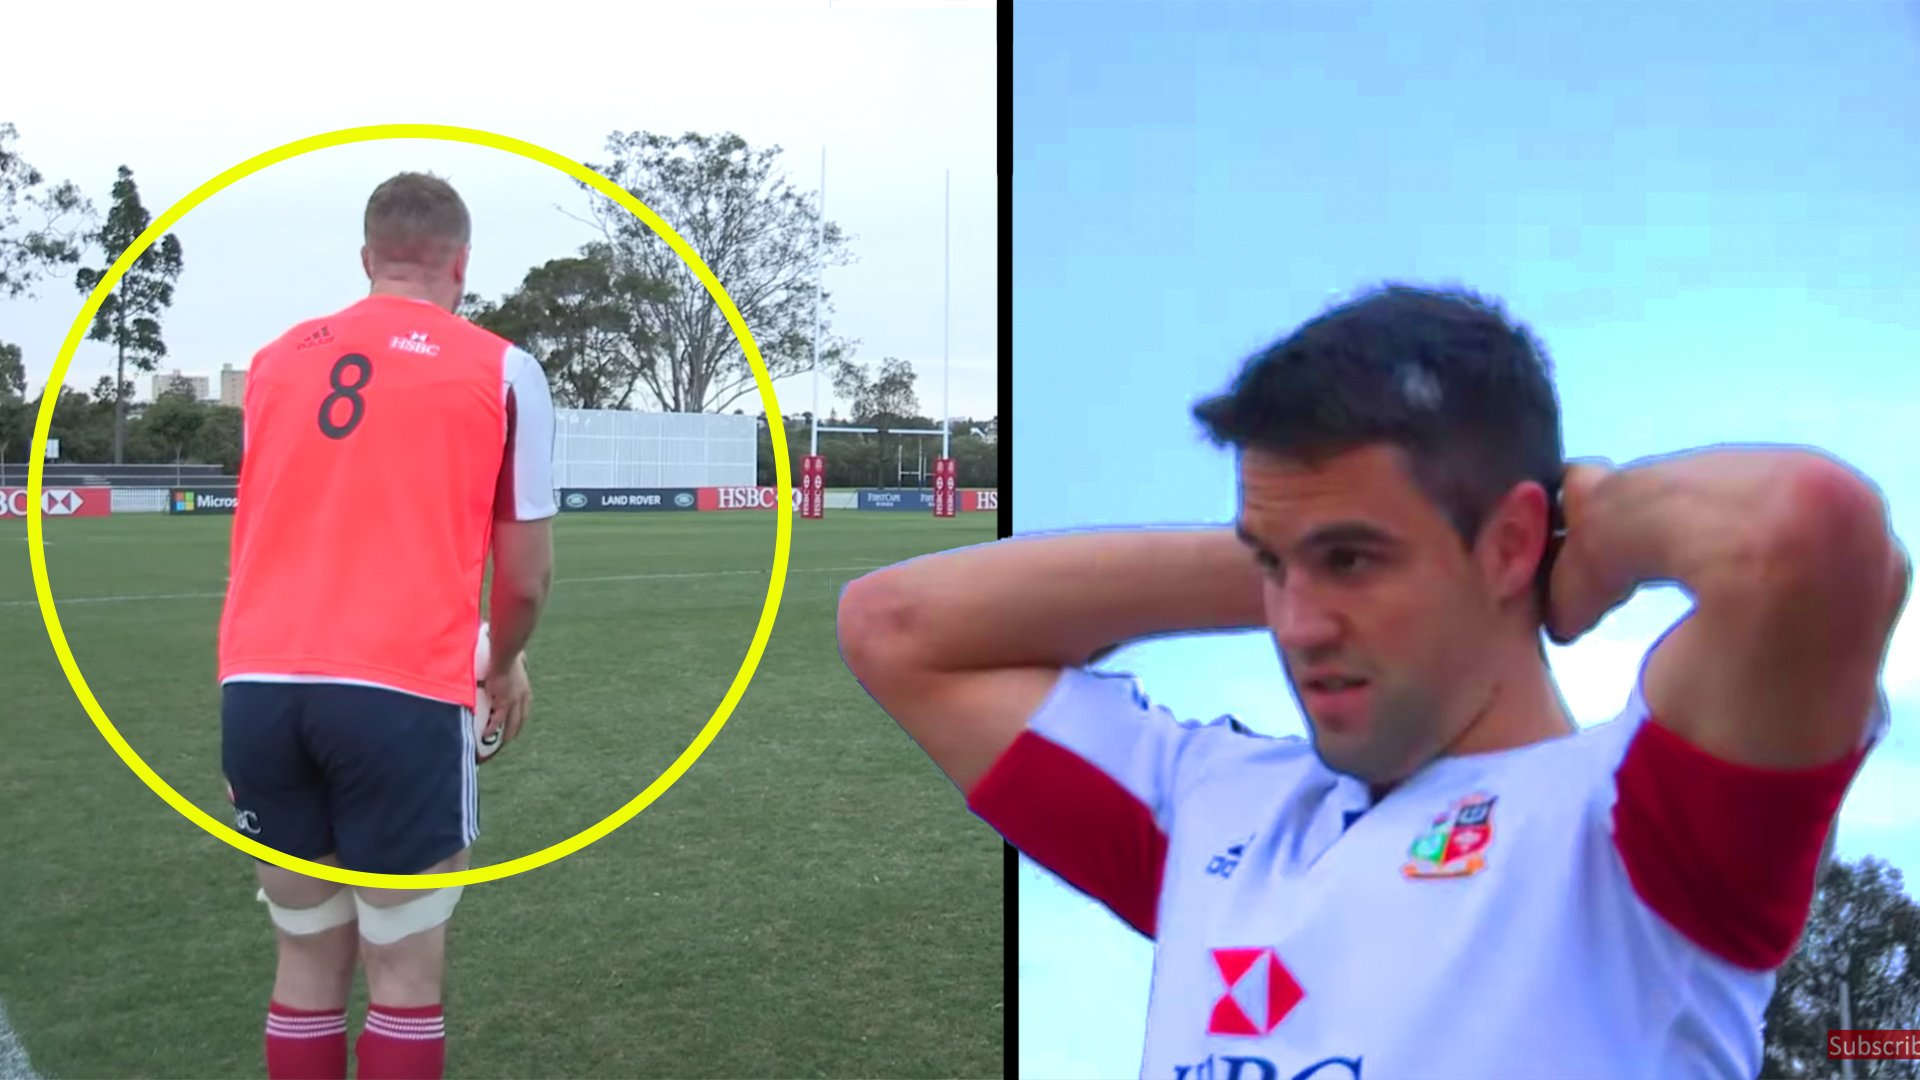 New video shows Connor Murray betting £1000 that Heaslip couldn't score drop goal in training